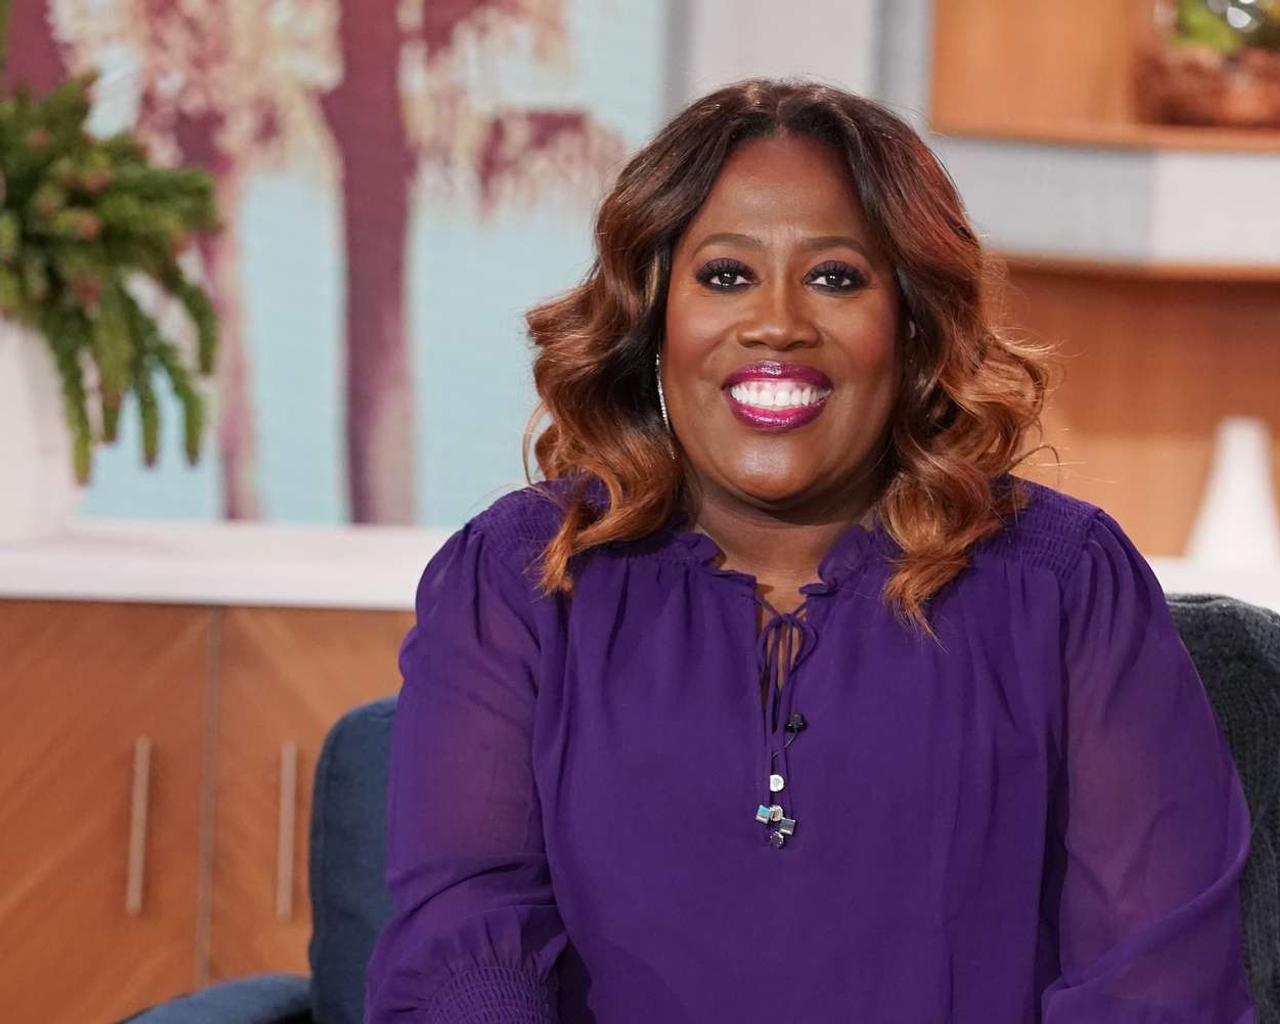 Sheryl Underwood ends the silence after Sharon Osbourne's release from 'The Talk'